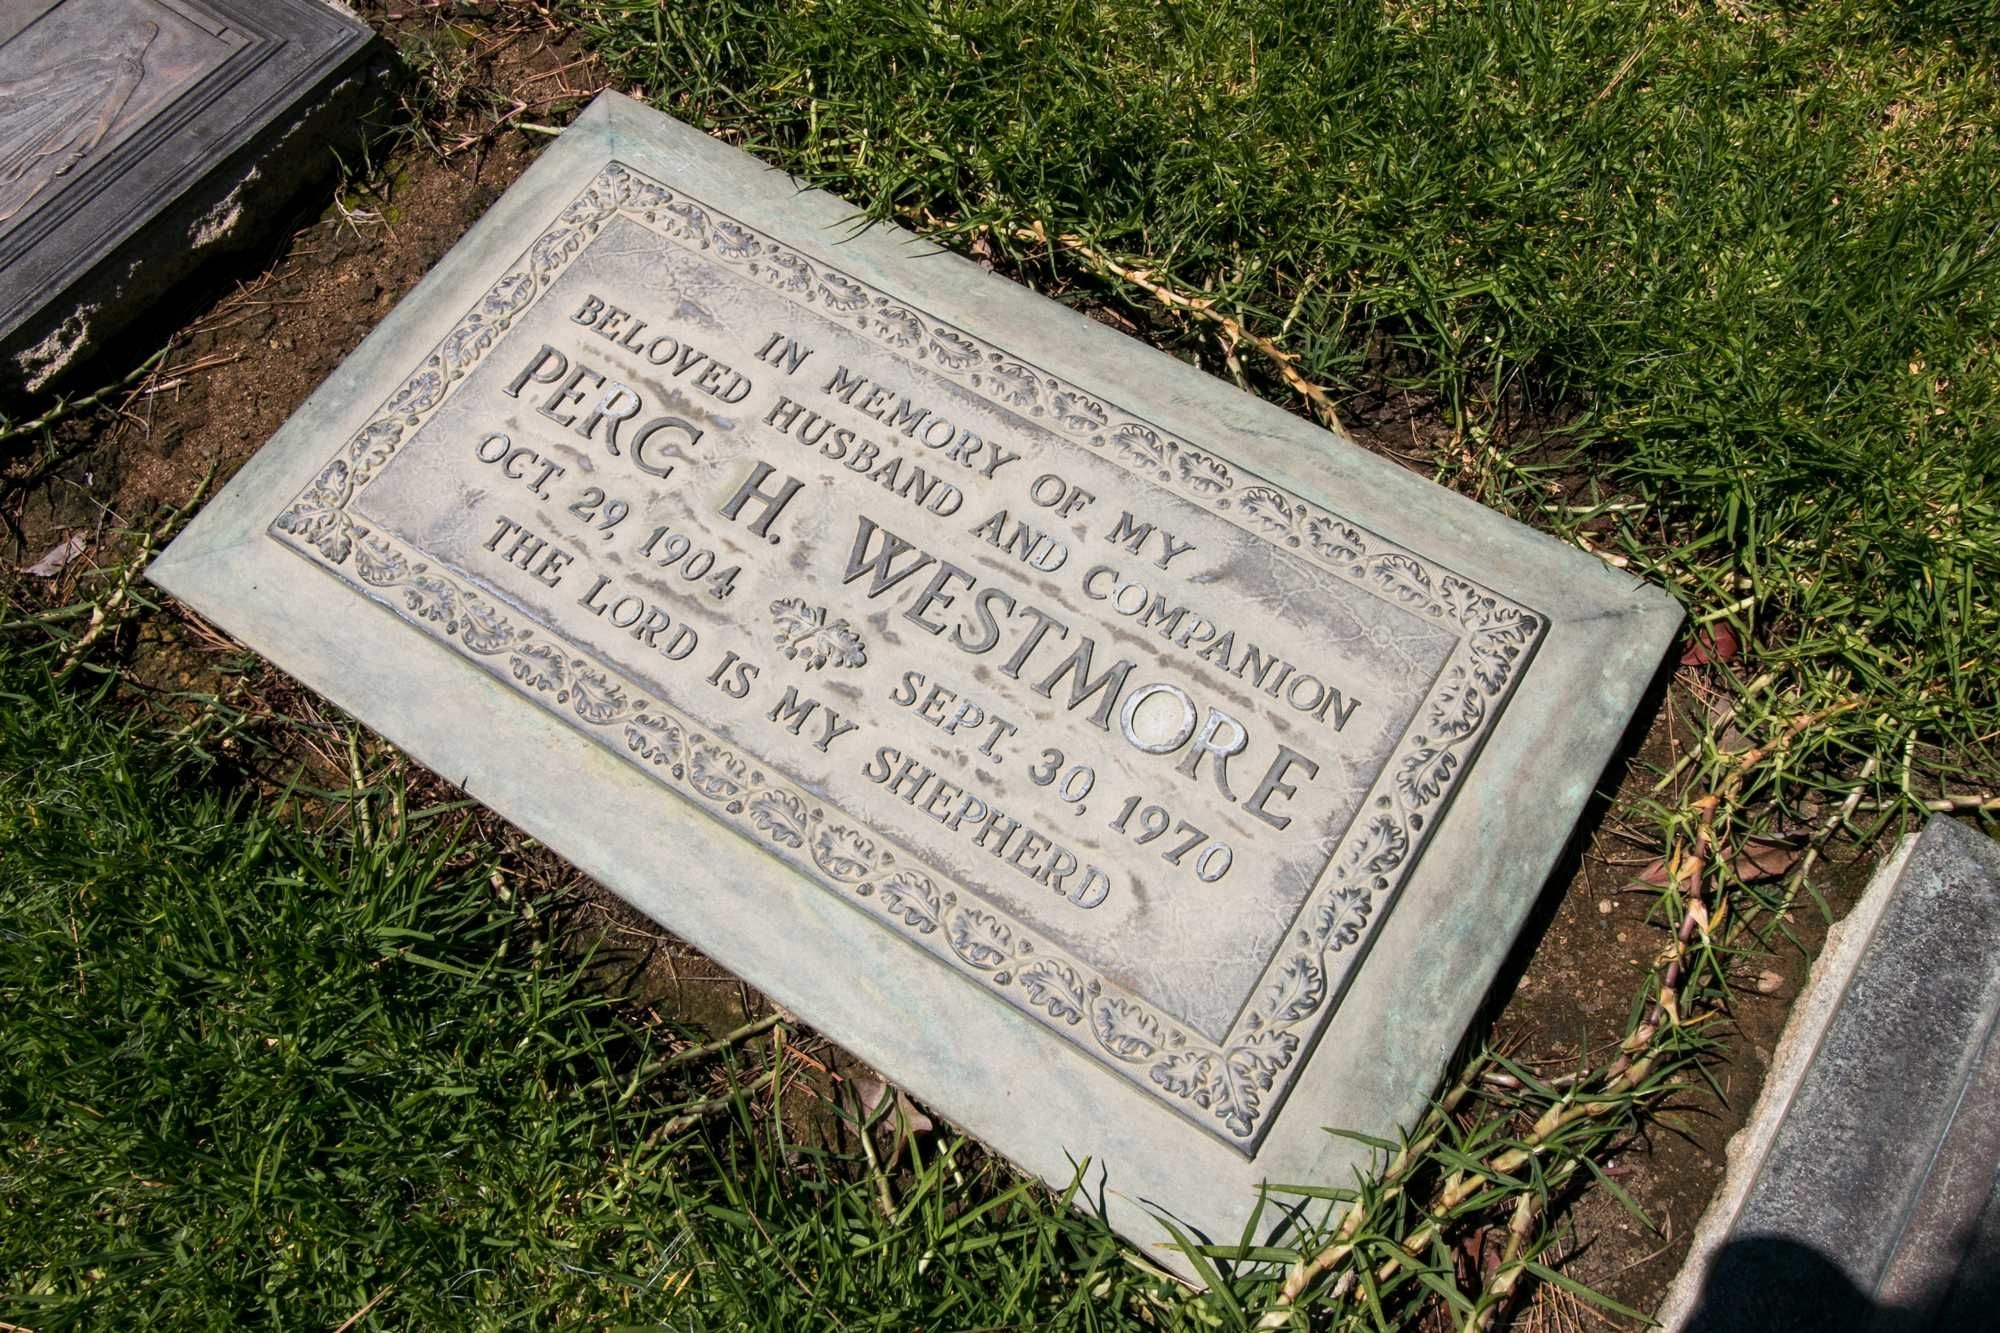 Walk among the graves of celebrities